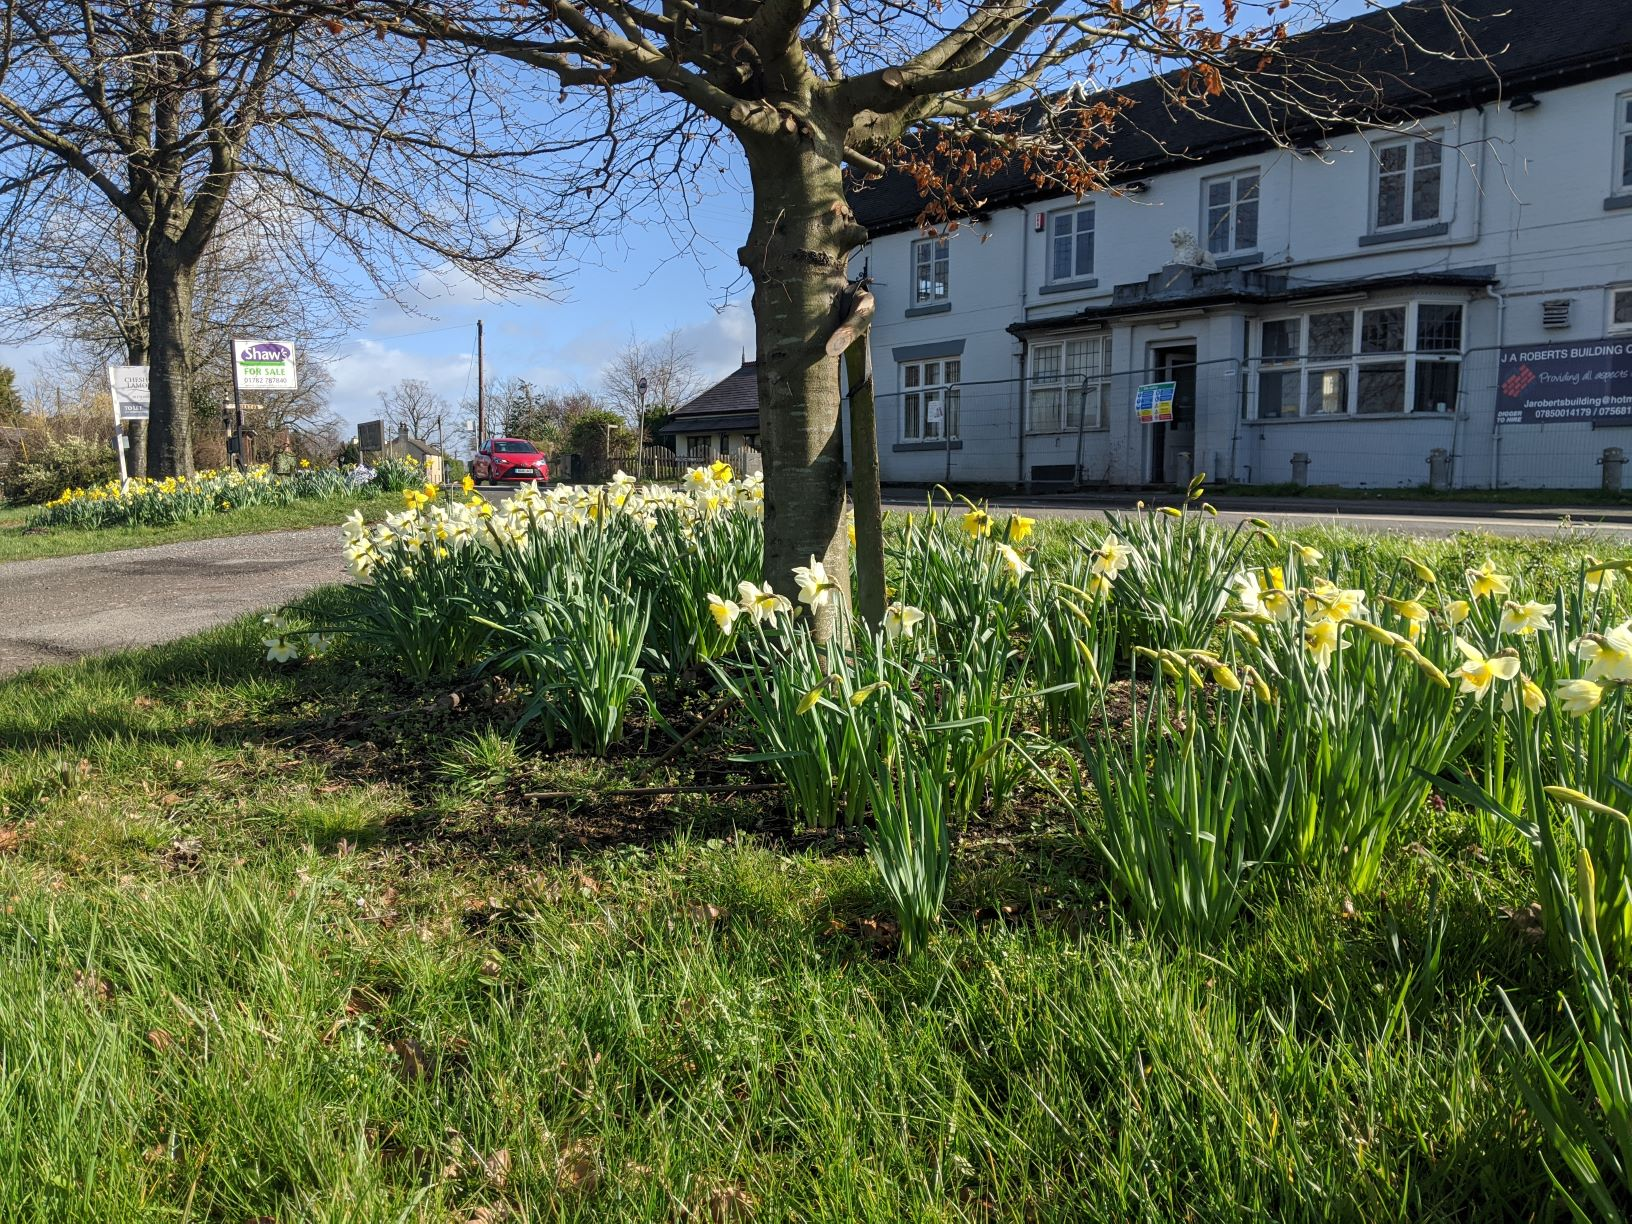 Daffodils opposite the White Lion, March 					2020